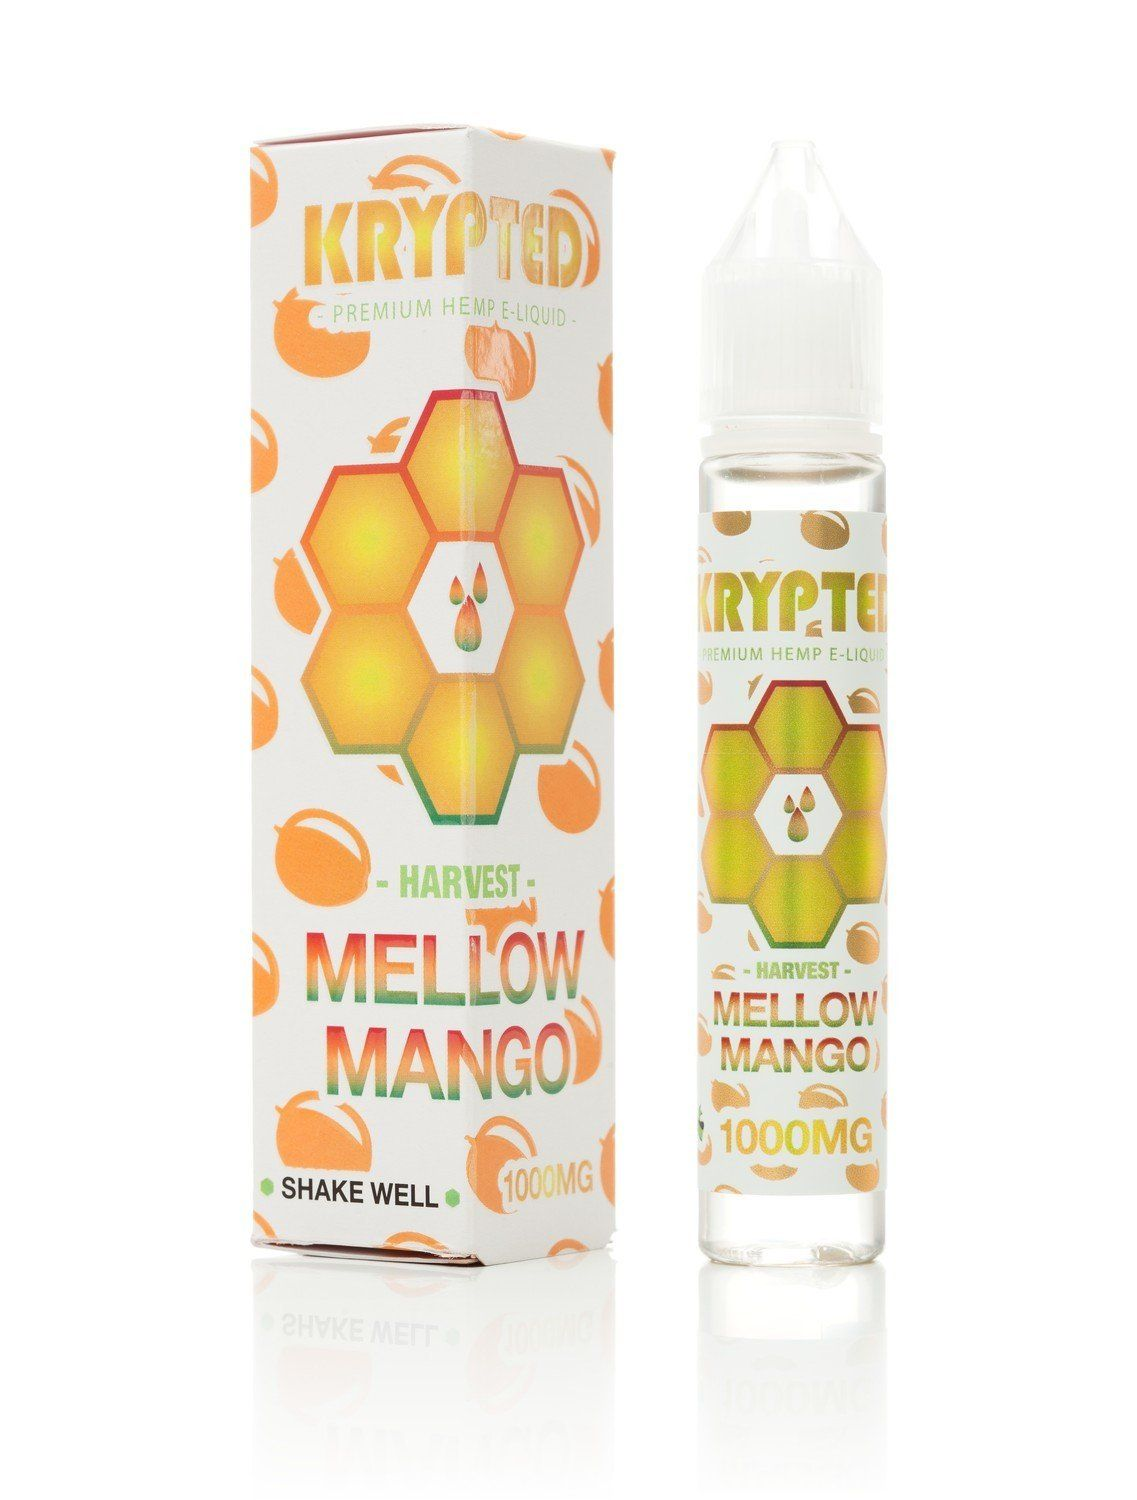 Krypted CBD Mellow Mango CBD Vape Juice